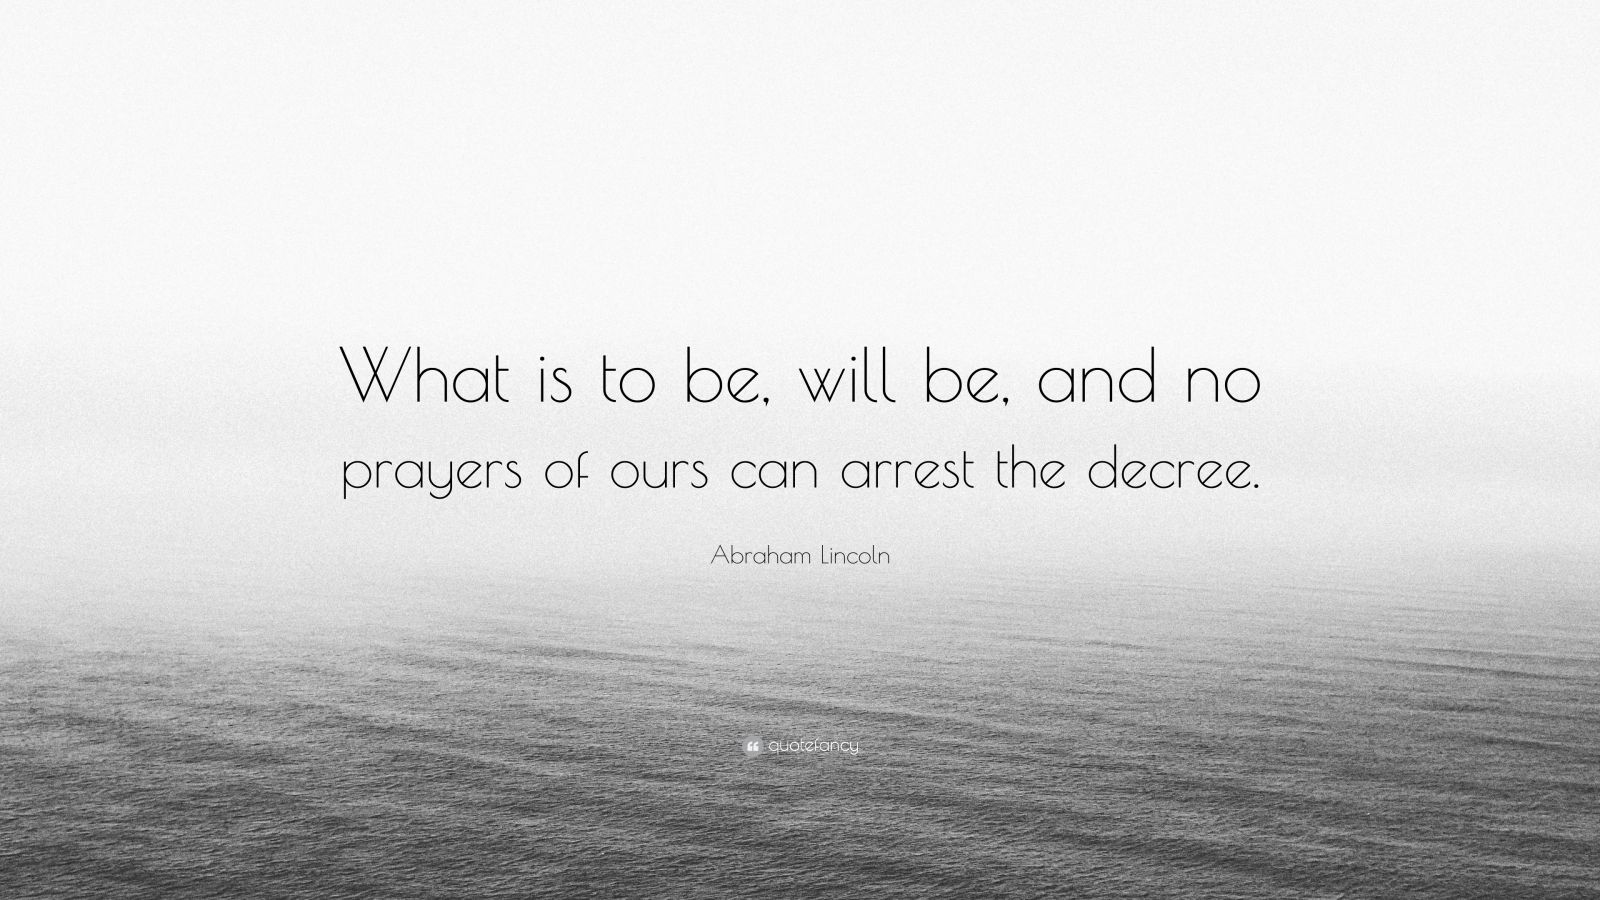 """Abraham Lincoln Quote: """"What is to be, will be, and no prayers of ours can arrest the decree."""""""